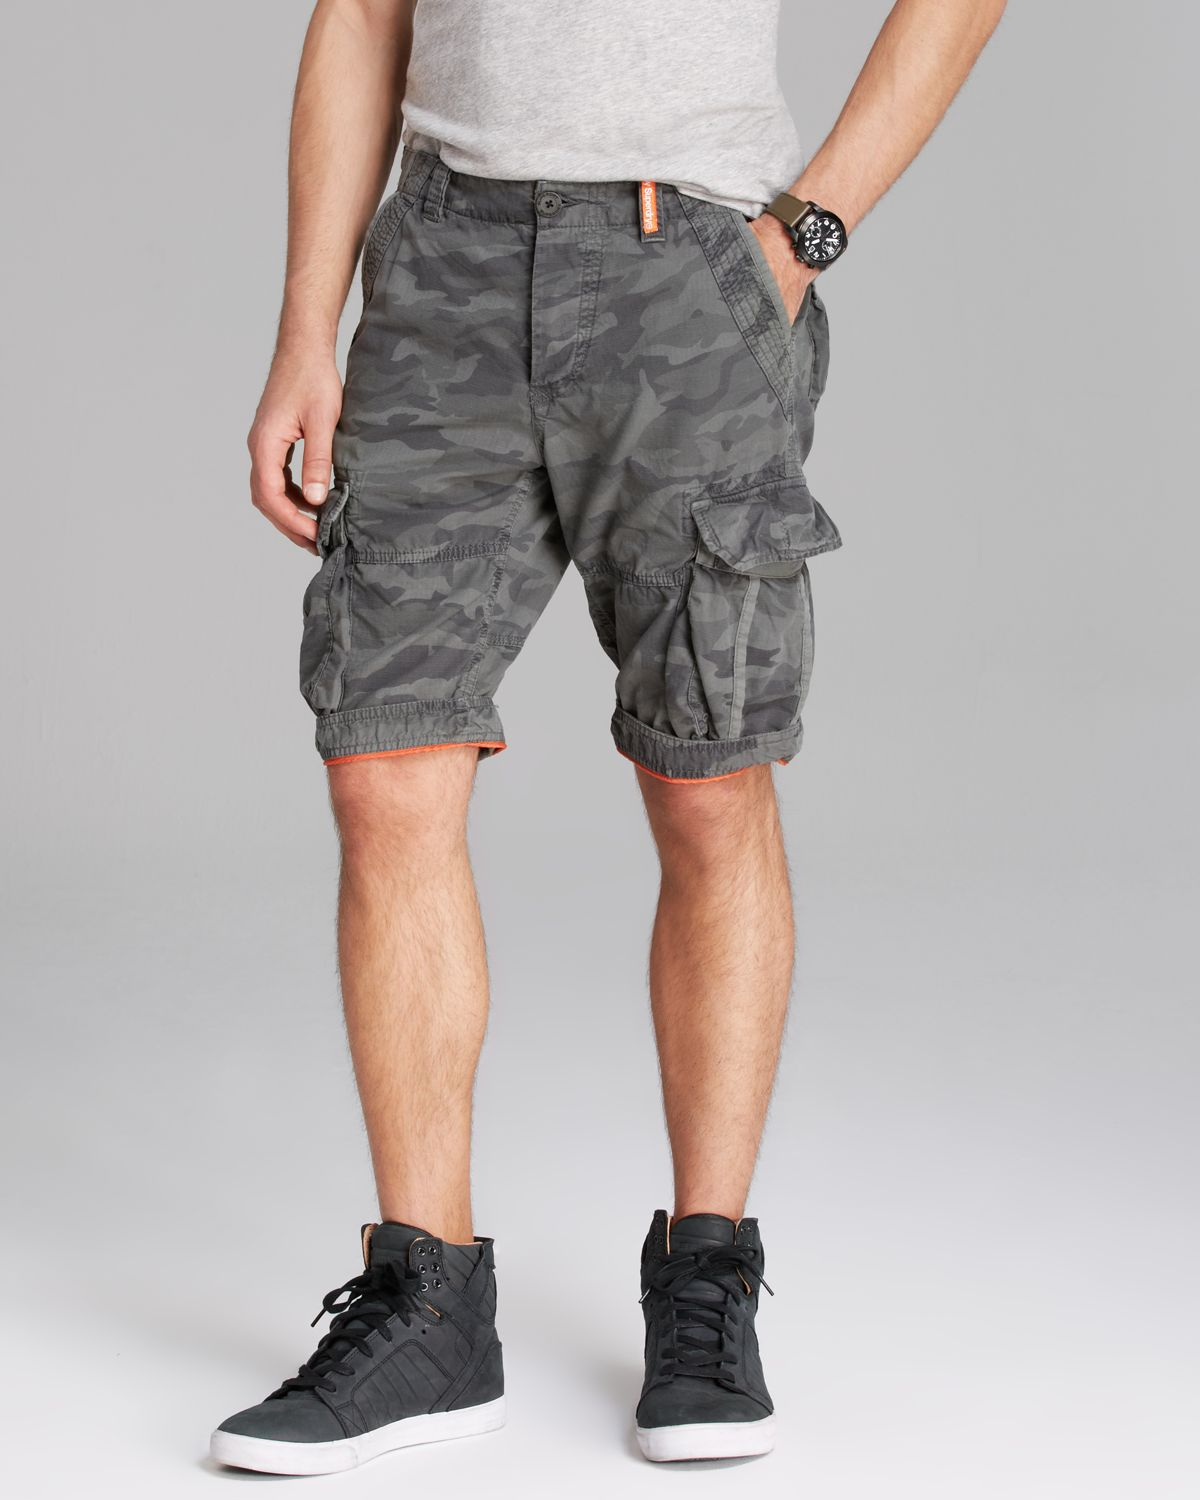 a105427f6e Superdry Camo Ripstop Lite Cargo Shorts in Gray for Men - Lyst